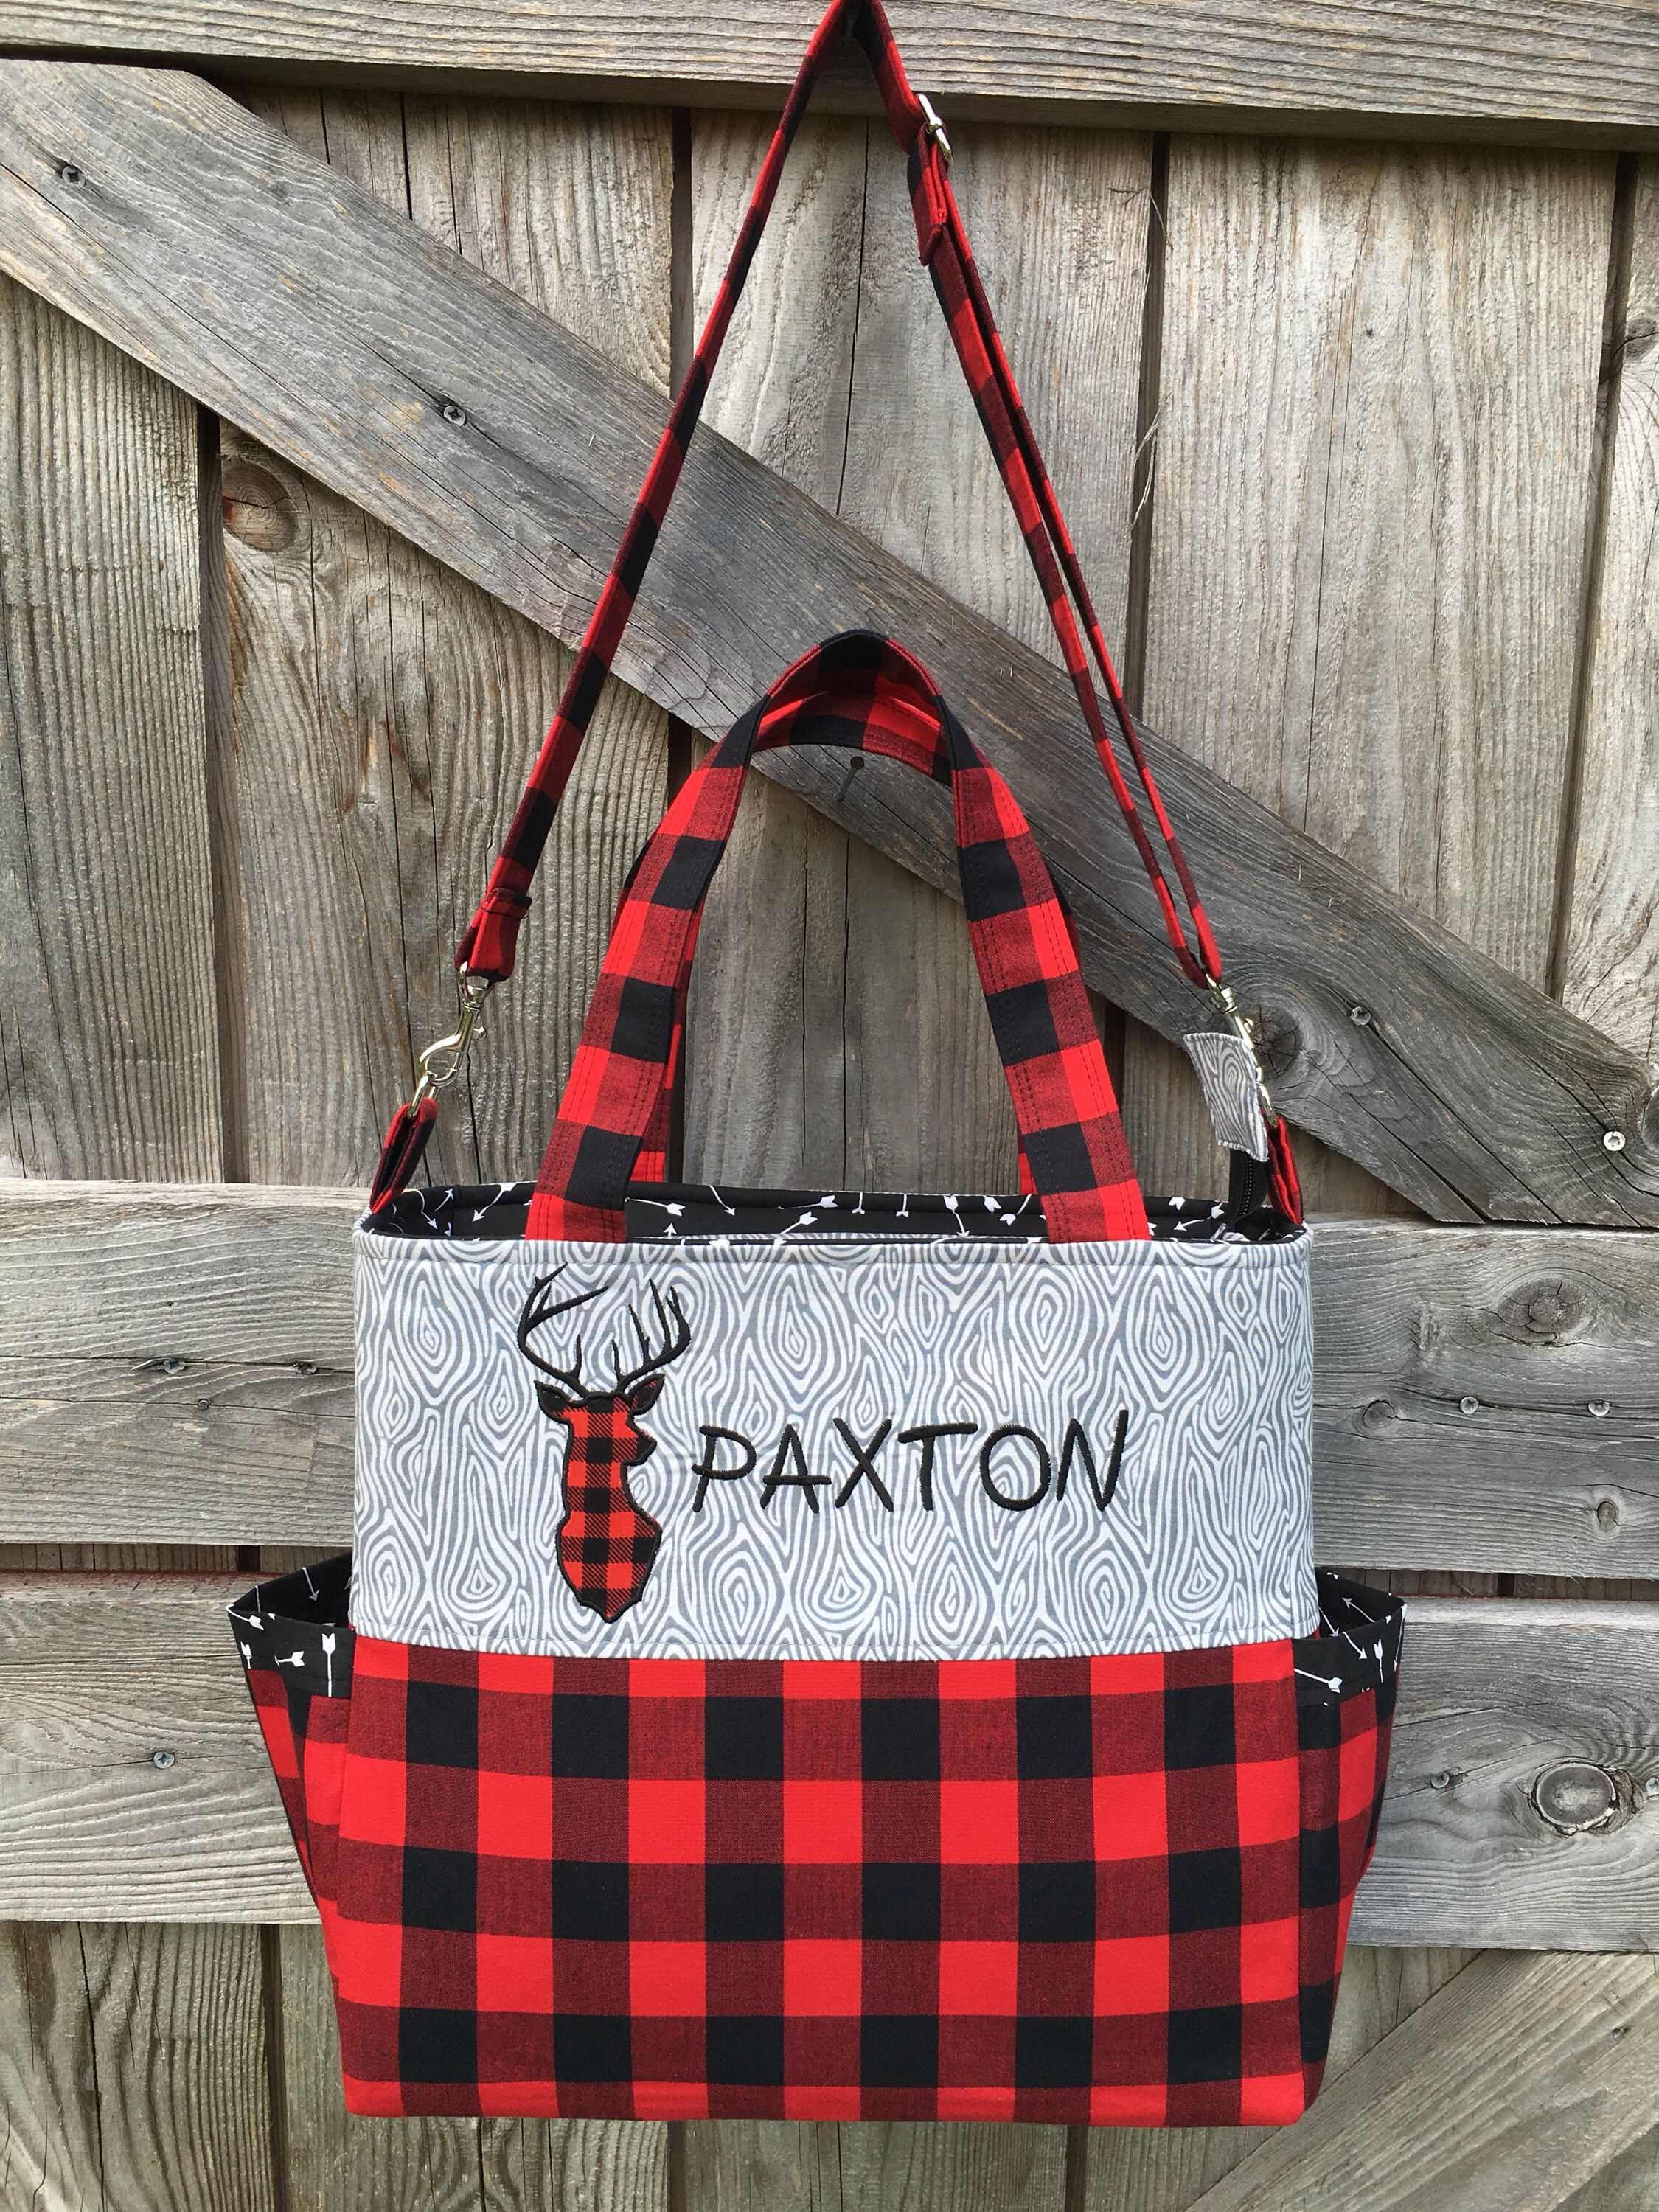 Buffalo Plaid Diaper Bag Red And Black Check Deer Bottle Pockets Tote Woodland Lumber Jack Baby Stuff